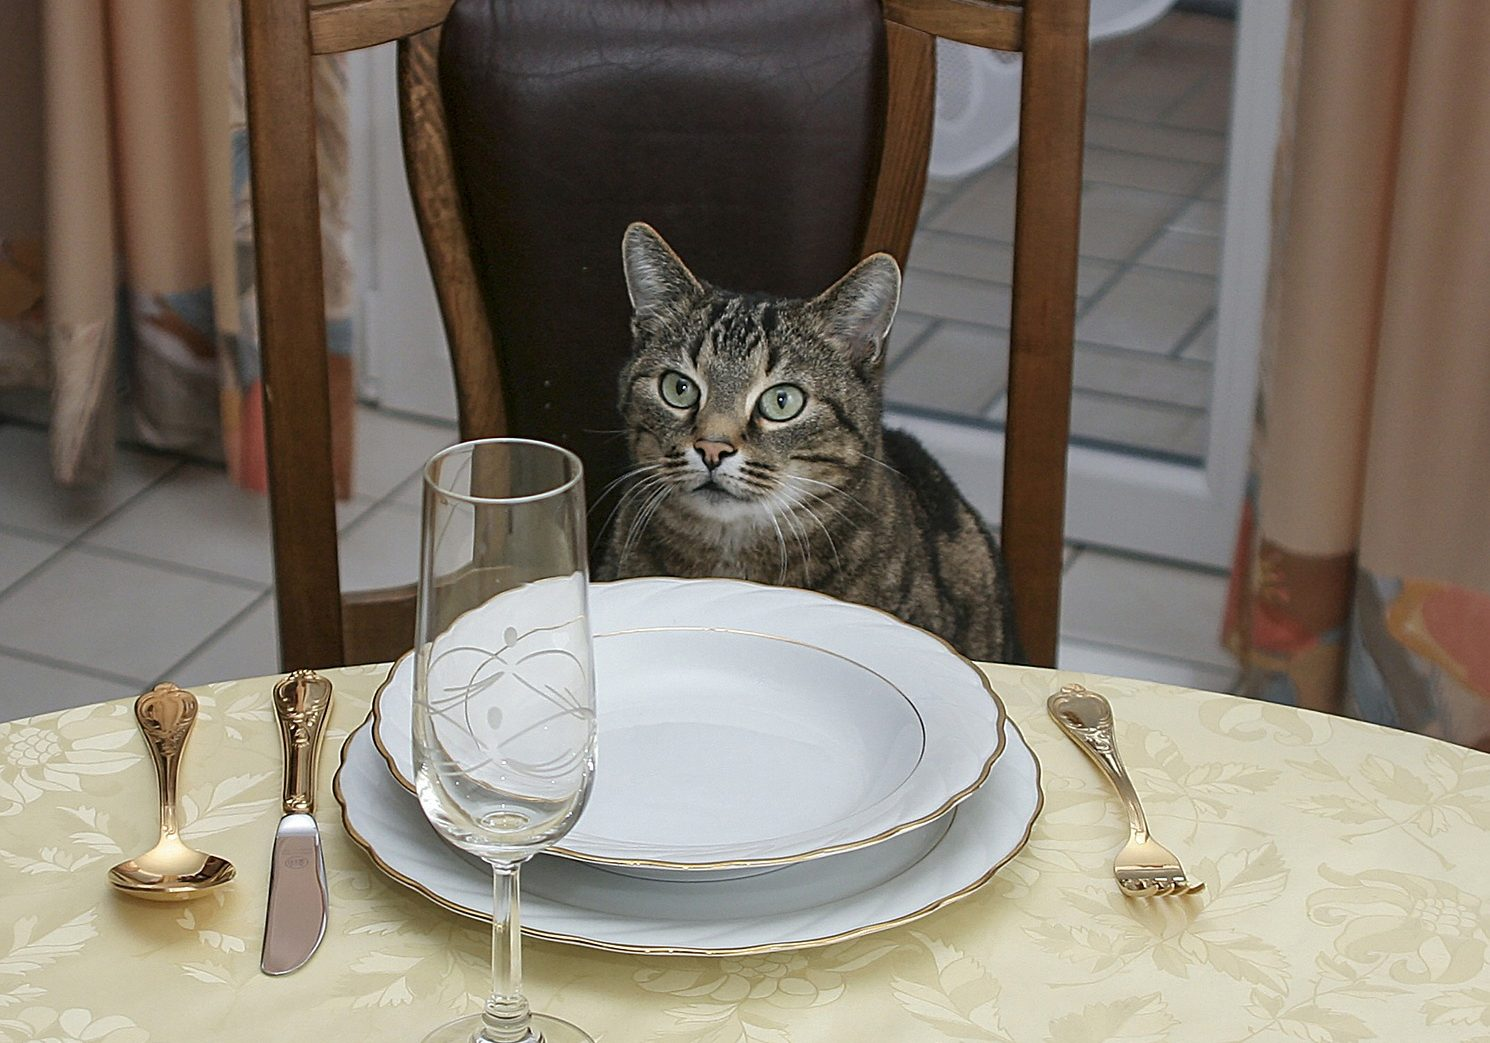 Dining With Domesticus: The Best and Worst Human Foods for Cats